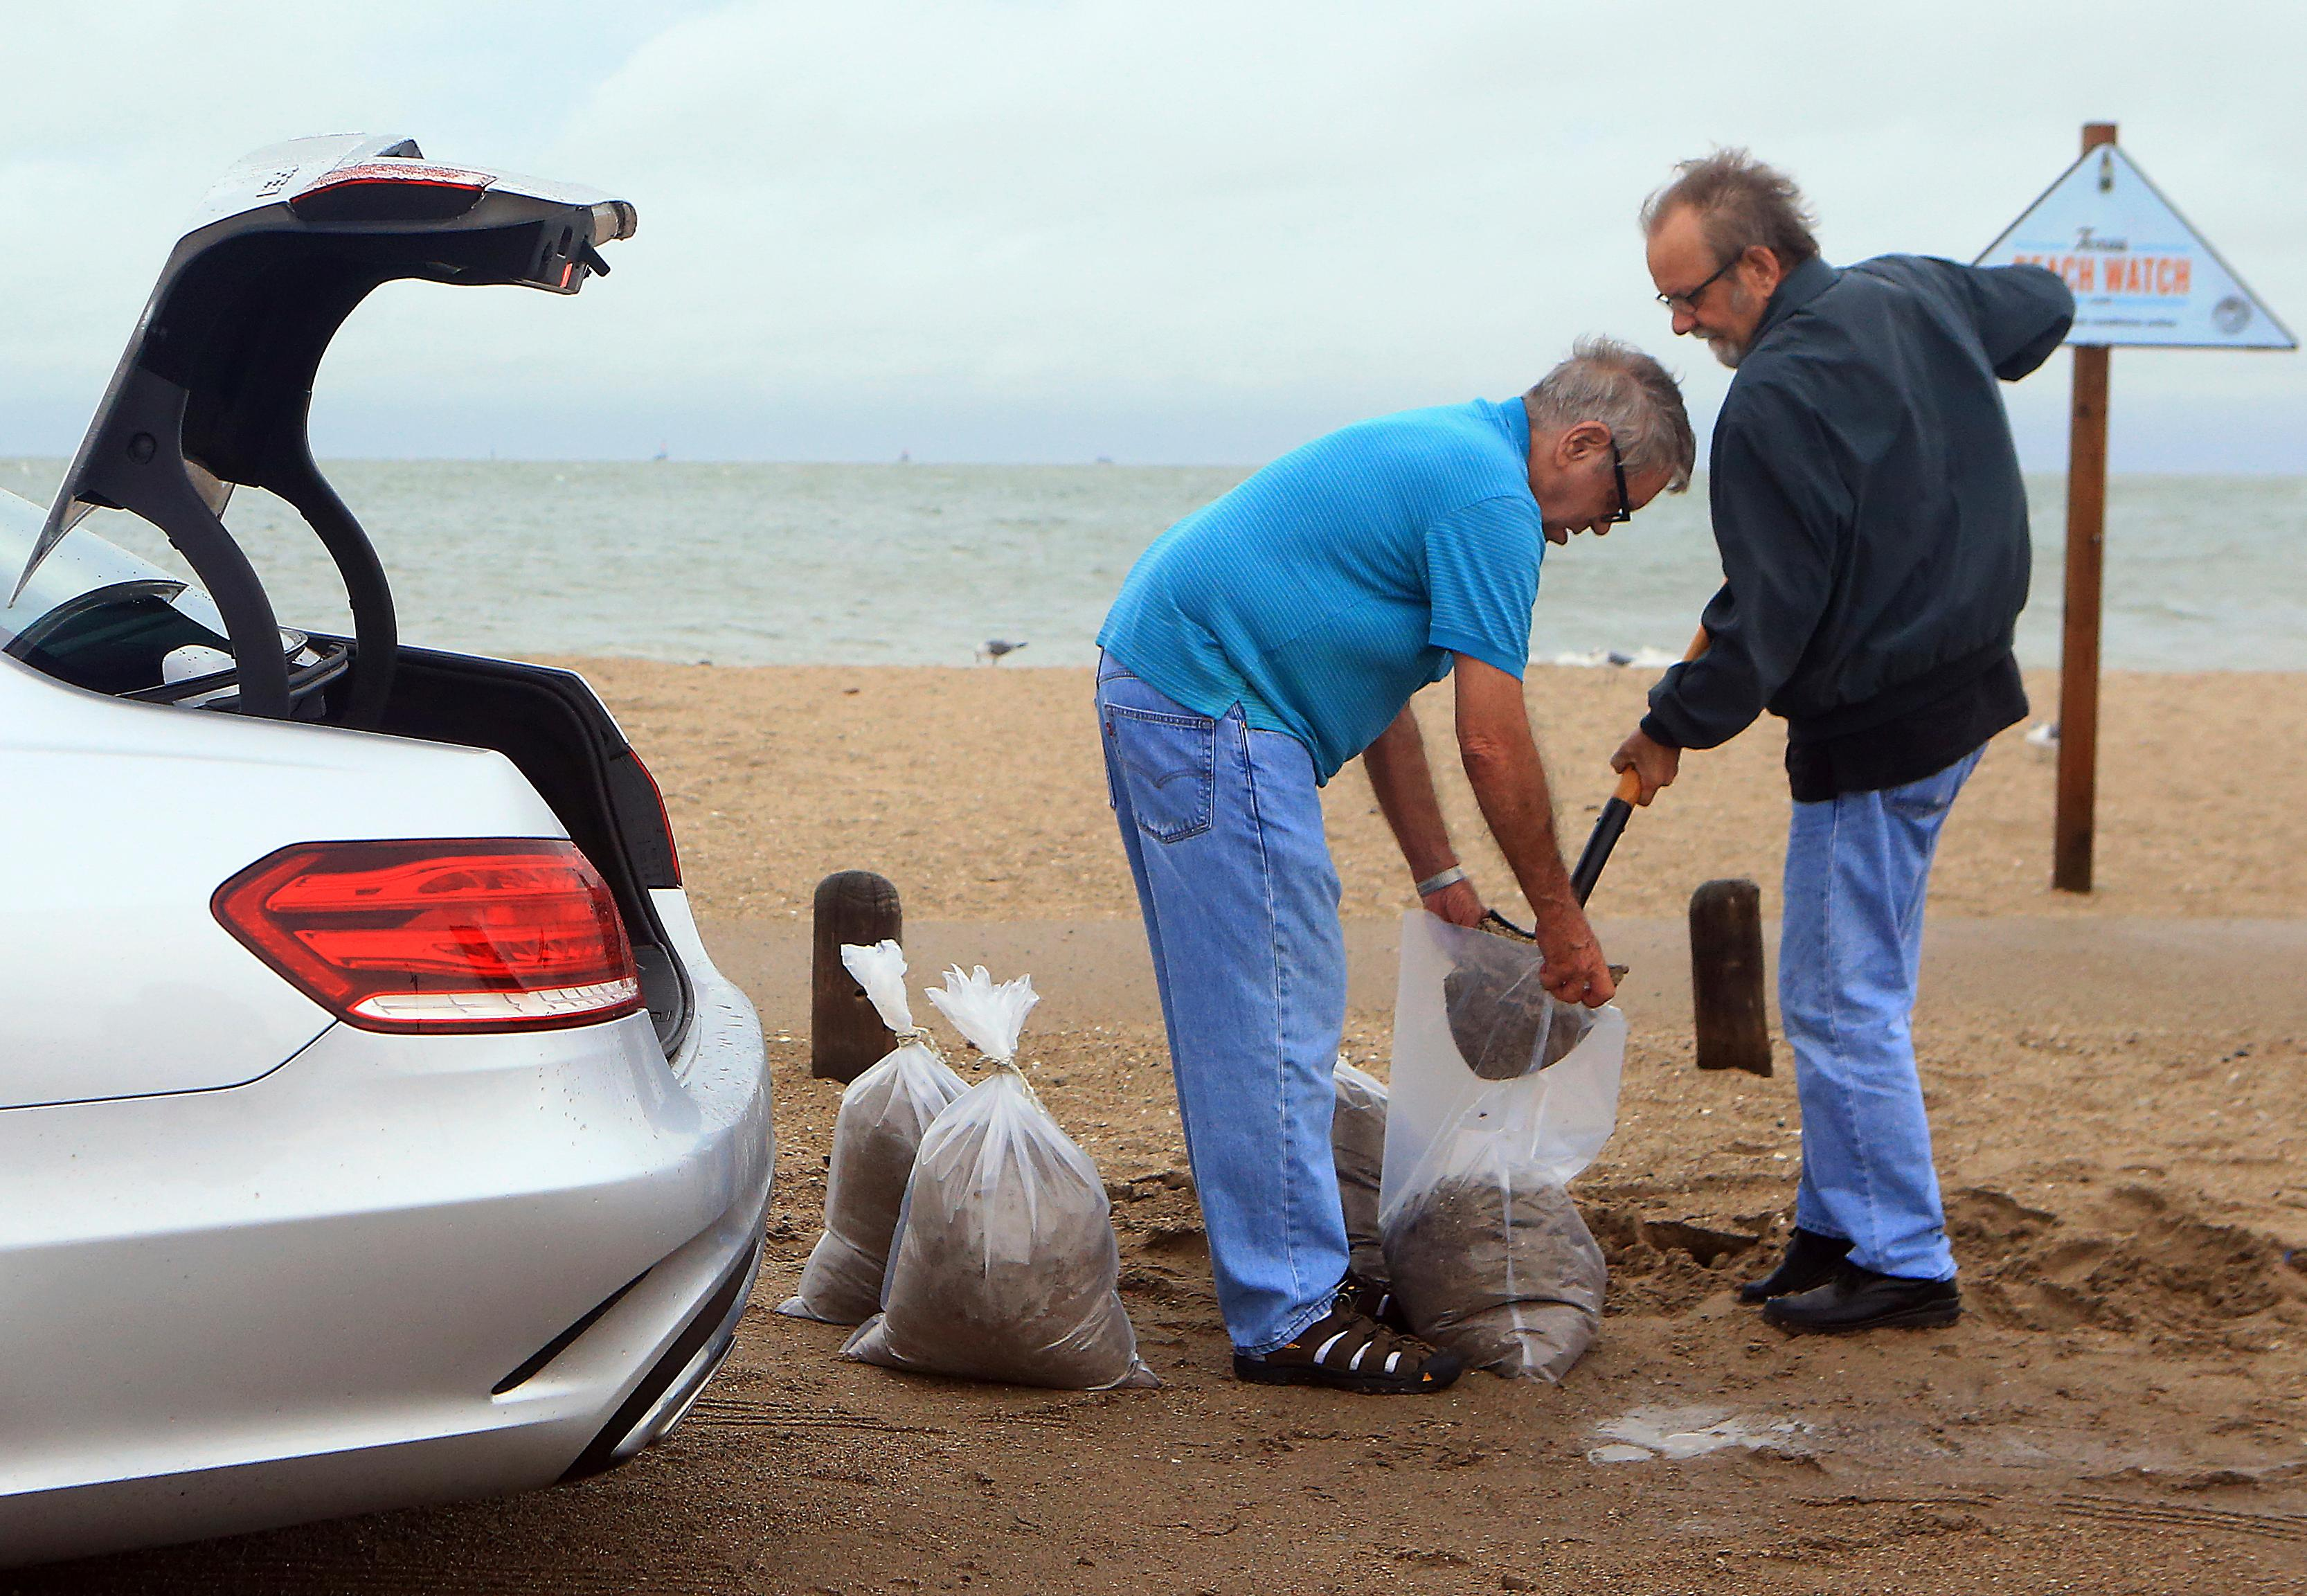 Tom Corbin, right, and Terry Corbin prepare sandbags as Hurricane Harvey approaches the Coastal Bend area on Friday, Aug. 25, 2017, in Corpus Christi, Texas. The National Hurricane Center warns that conditions are deteriorating as Hurricane Harvey strengthens and slowly moves toward the Texas coast. (Gabe Hernandez/Corpus Christi Caller-Times via AP)